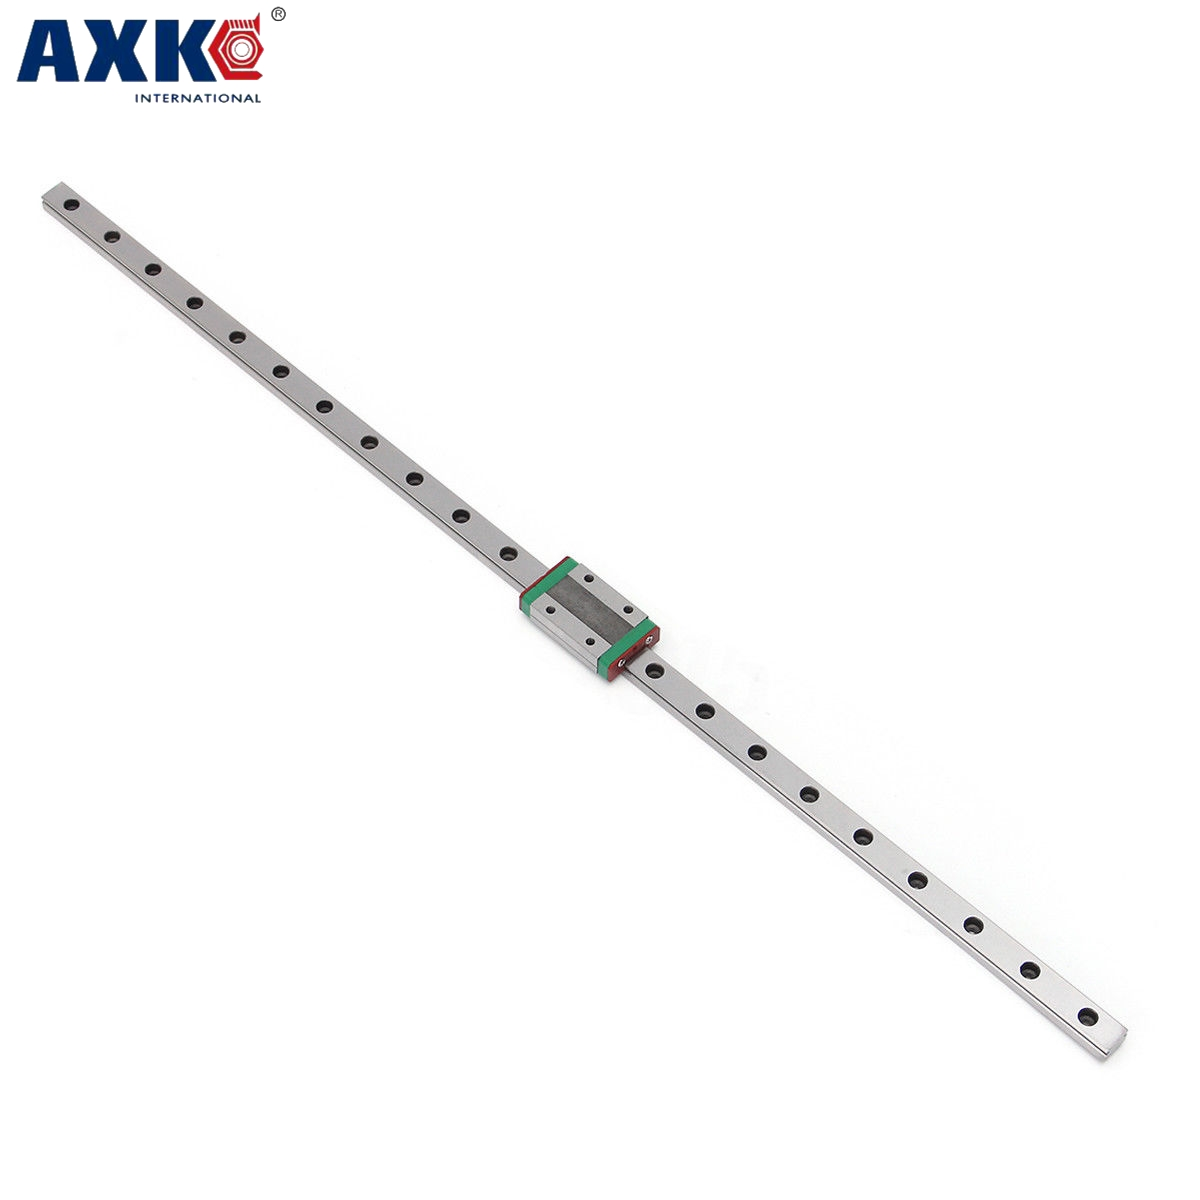 AXK CNC MR12 12mm linear guide NEW  technology   MGN12-L-350mm with MGN12C linear block with nigrescence the surface treatment axk mr12 miniature linear guide mgn12 long 400mm with a mgn12h length block for cnc parts free shipping